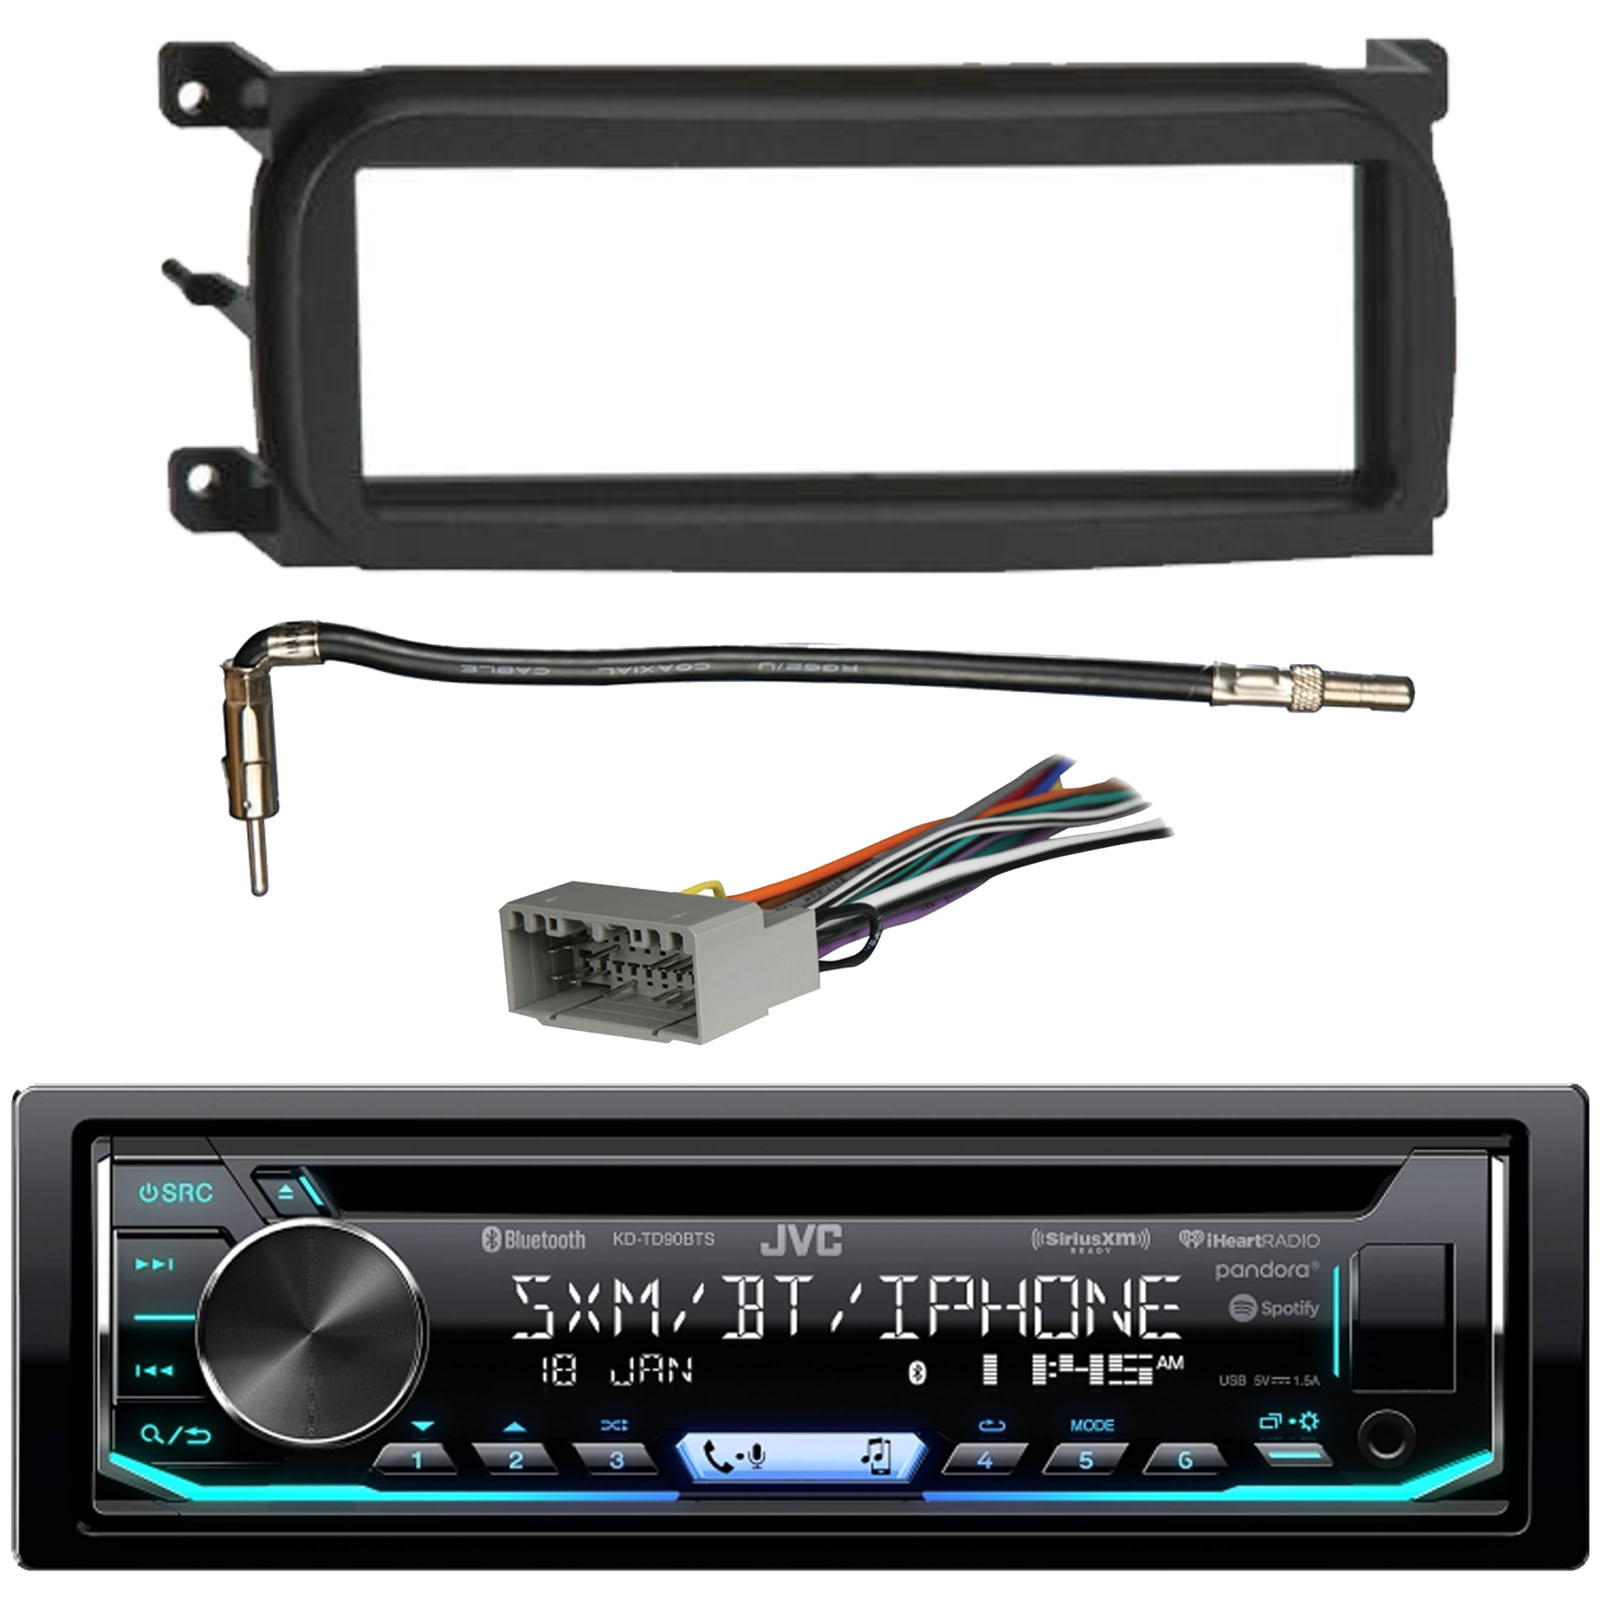 hight resolution of the installation kit allows easy mounting of your single din radio in select 1998 2009 chrysler dodge jeep and plymouth vehicles